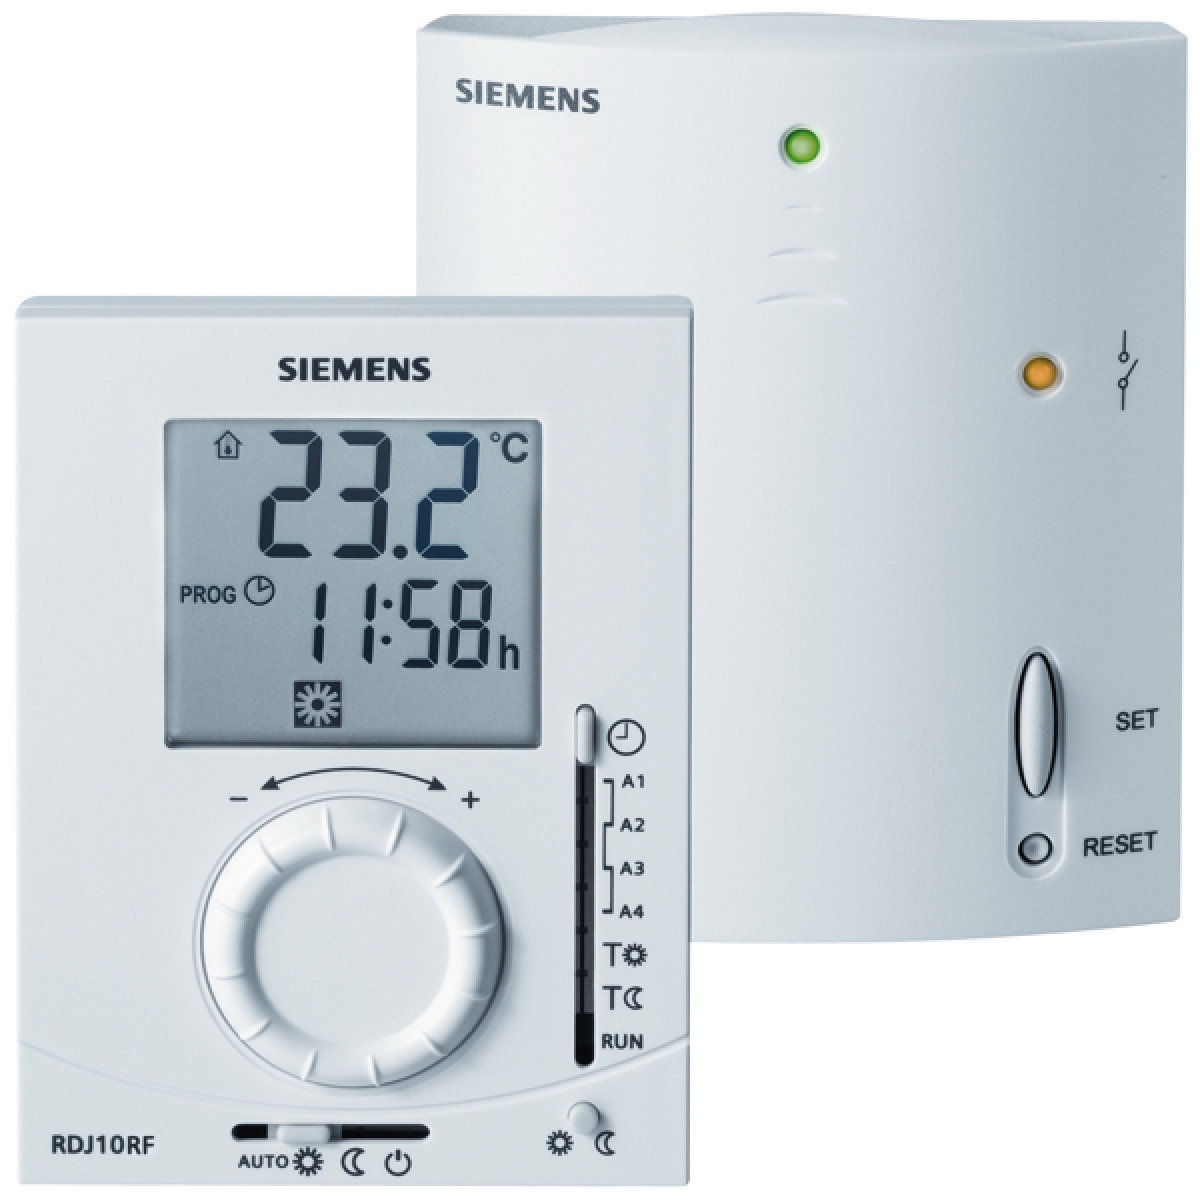 Siemens RDJ10RF Digital Thermostat dambiance